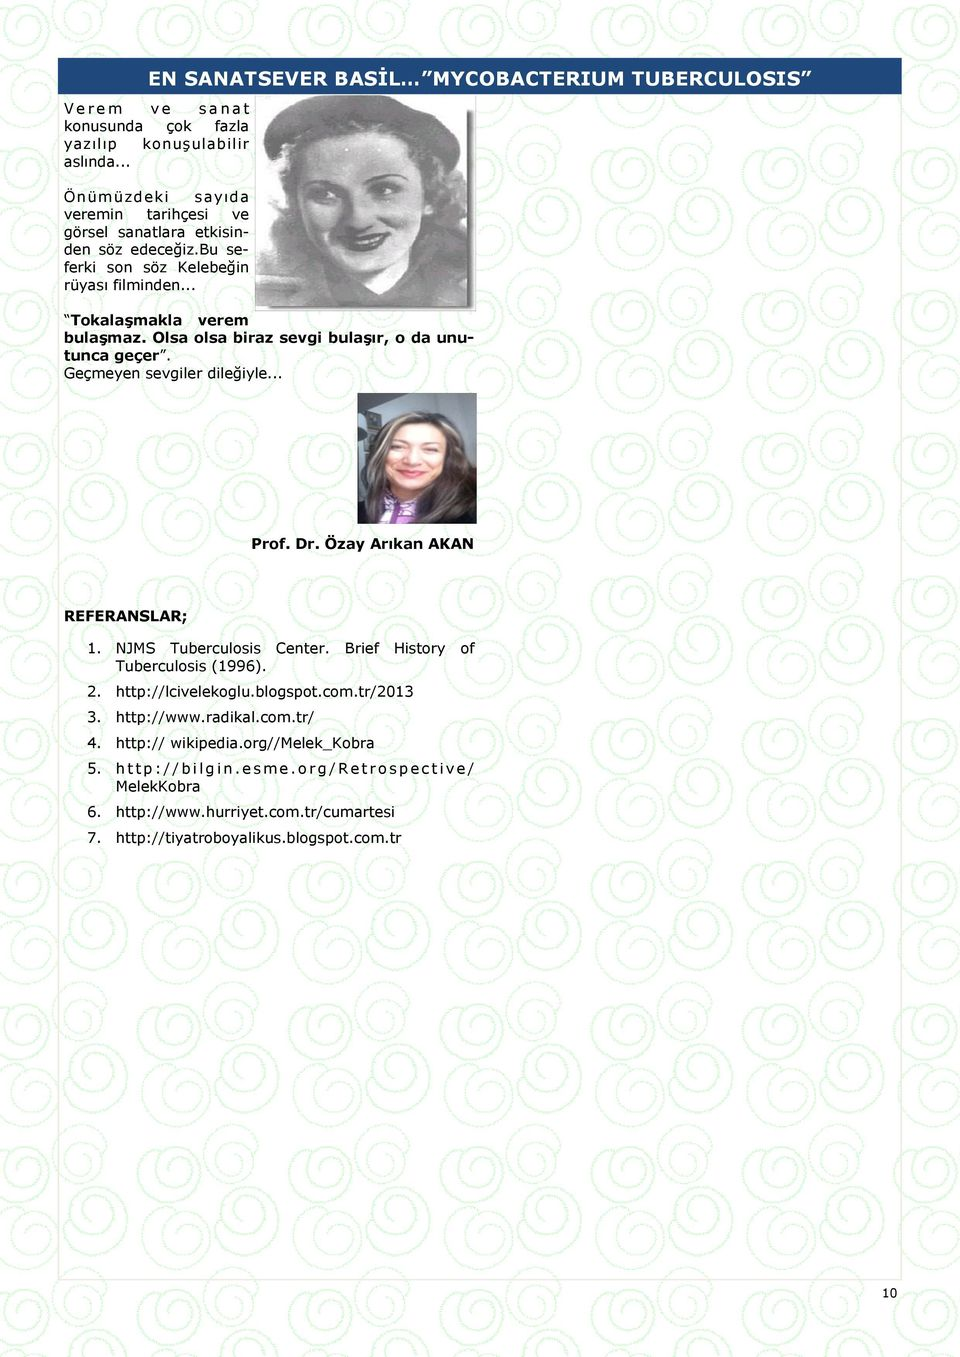 Olsa olsa biraz sevgi bulaşır, o da unutunca geçer. Geçmeyen sevgiler dileğiyle... Prof. Dr. Özay Arıkan AKAN REFERANSLAR; 1. NJMS Tuberculosis Center. Brief History of Tuberculosis (1996).